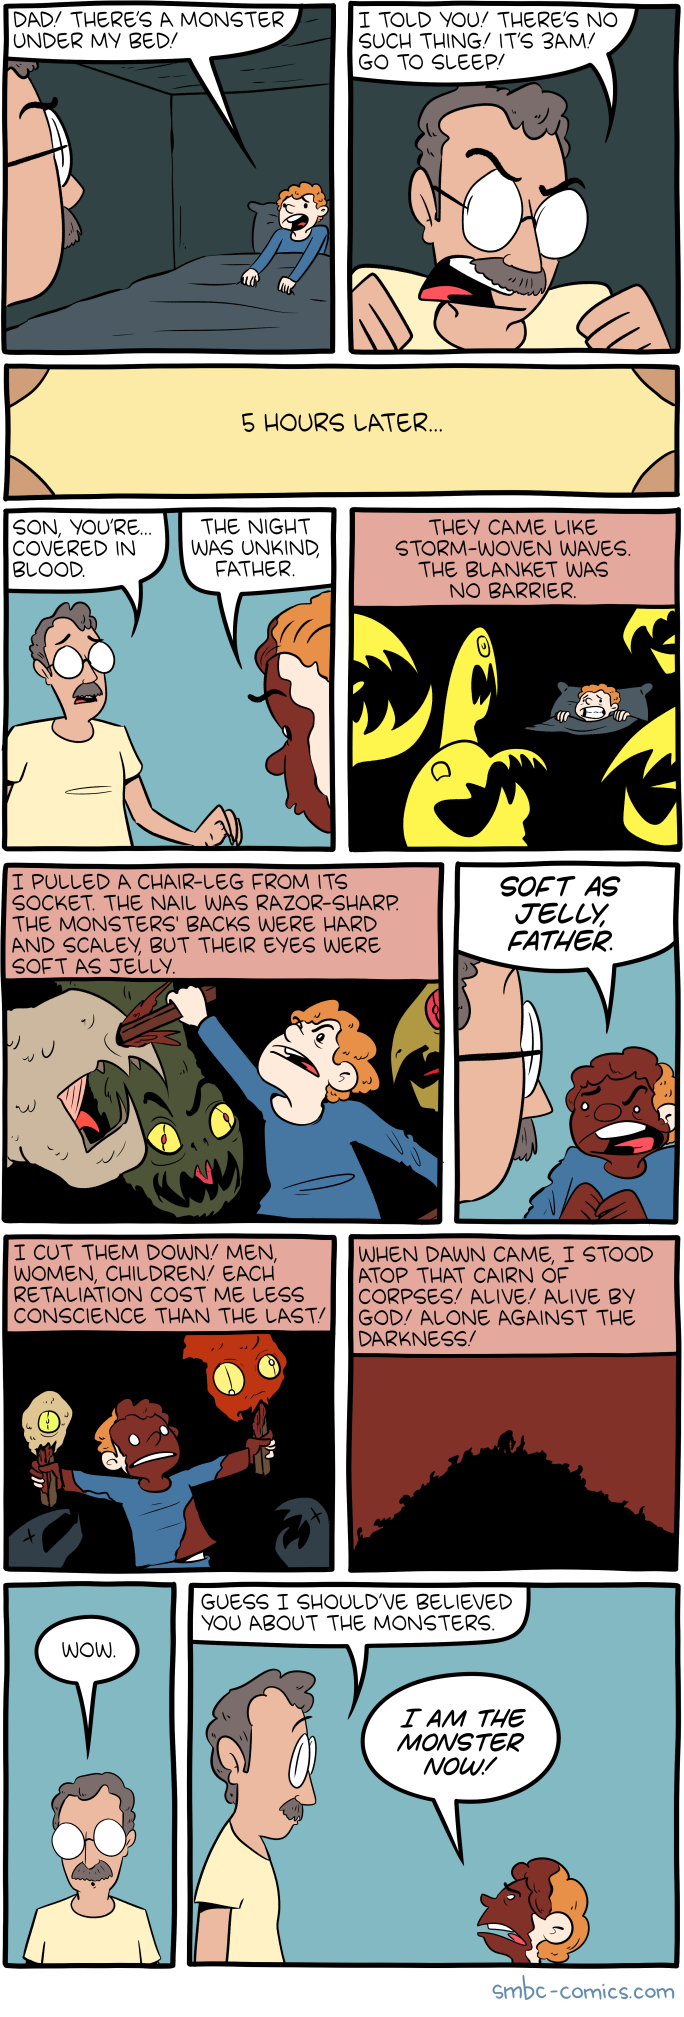 Monster under the bed — SMBC